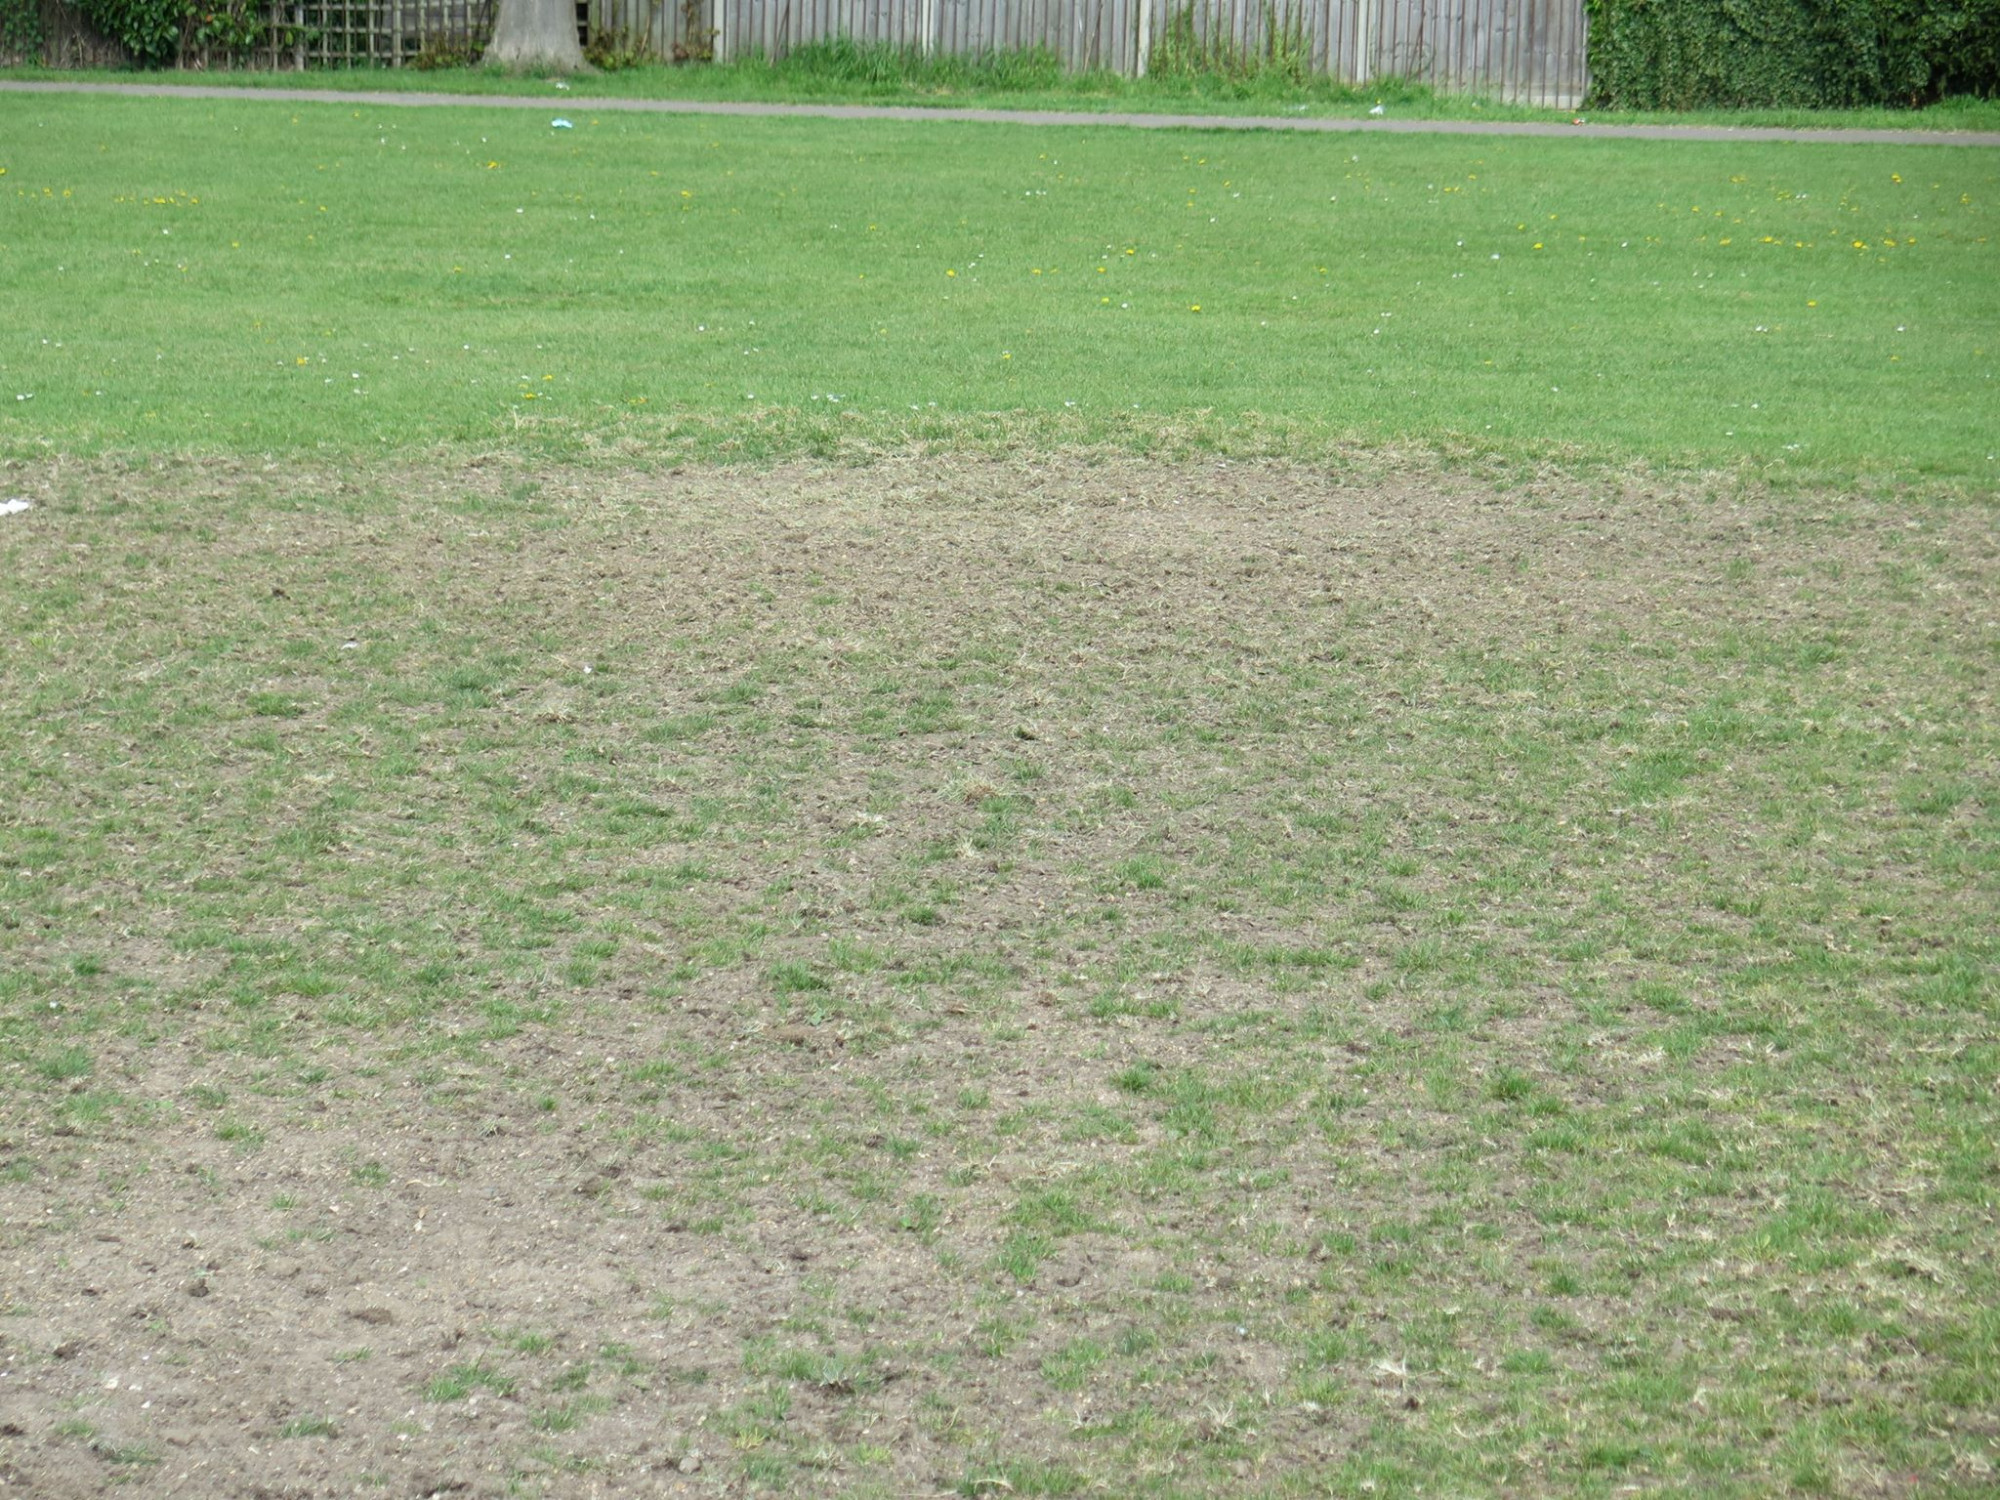 Some good reseeding by the Council. We now need it to be wet and warm. Not everyones choice tho.